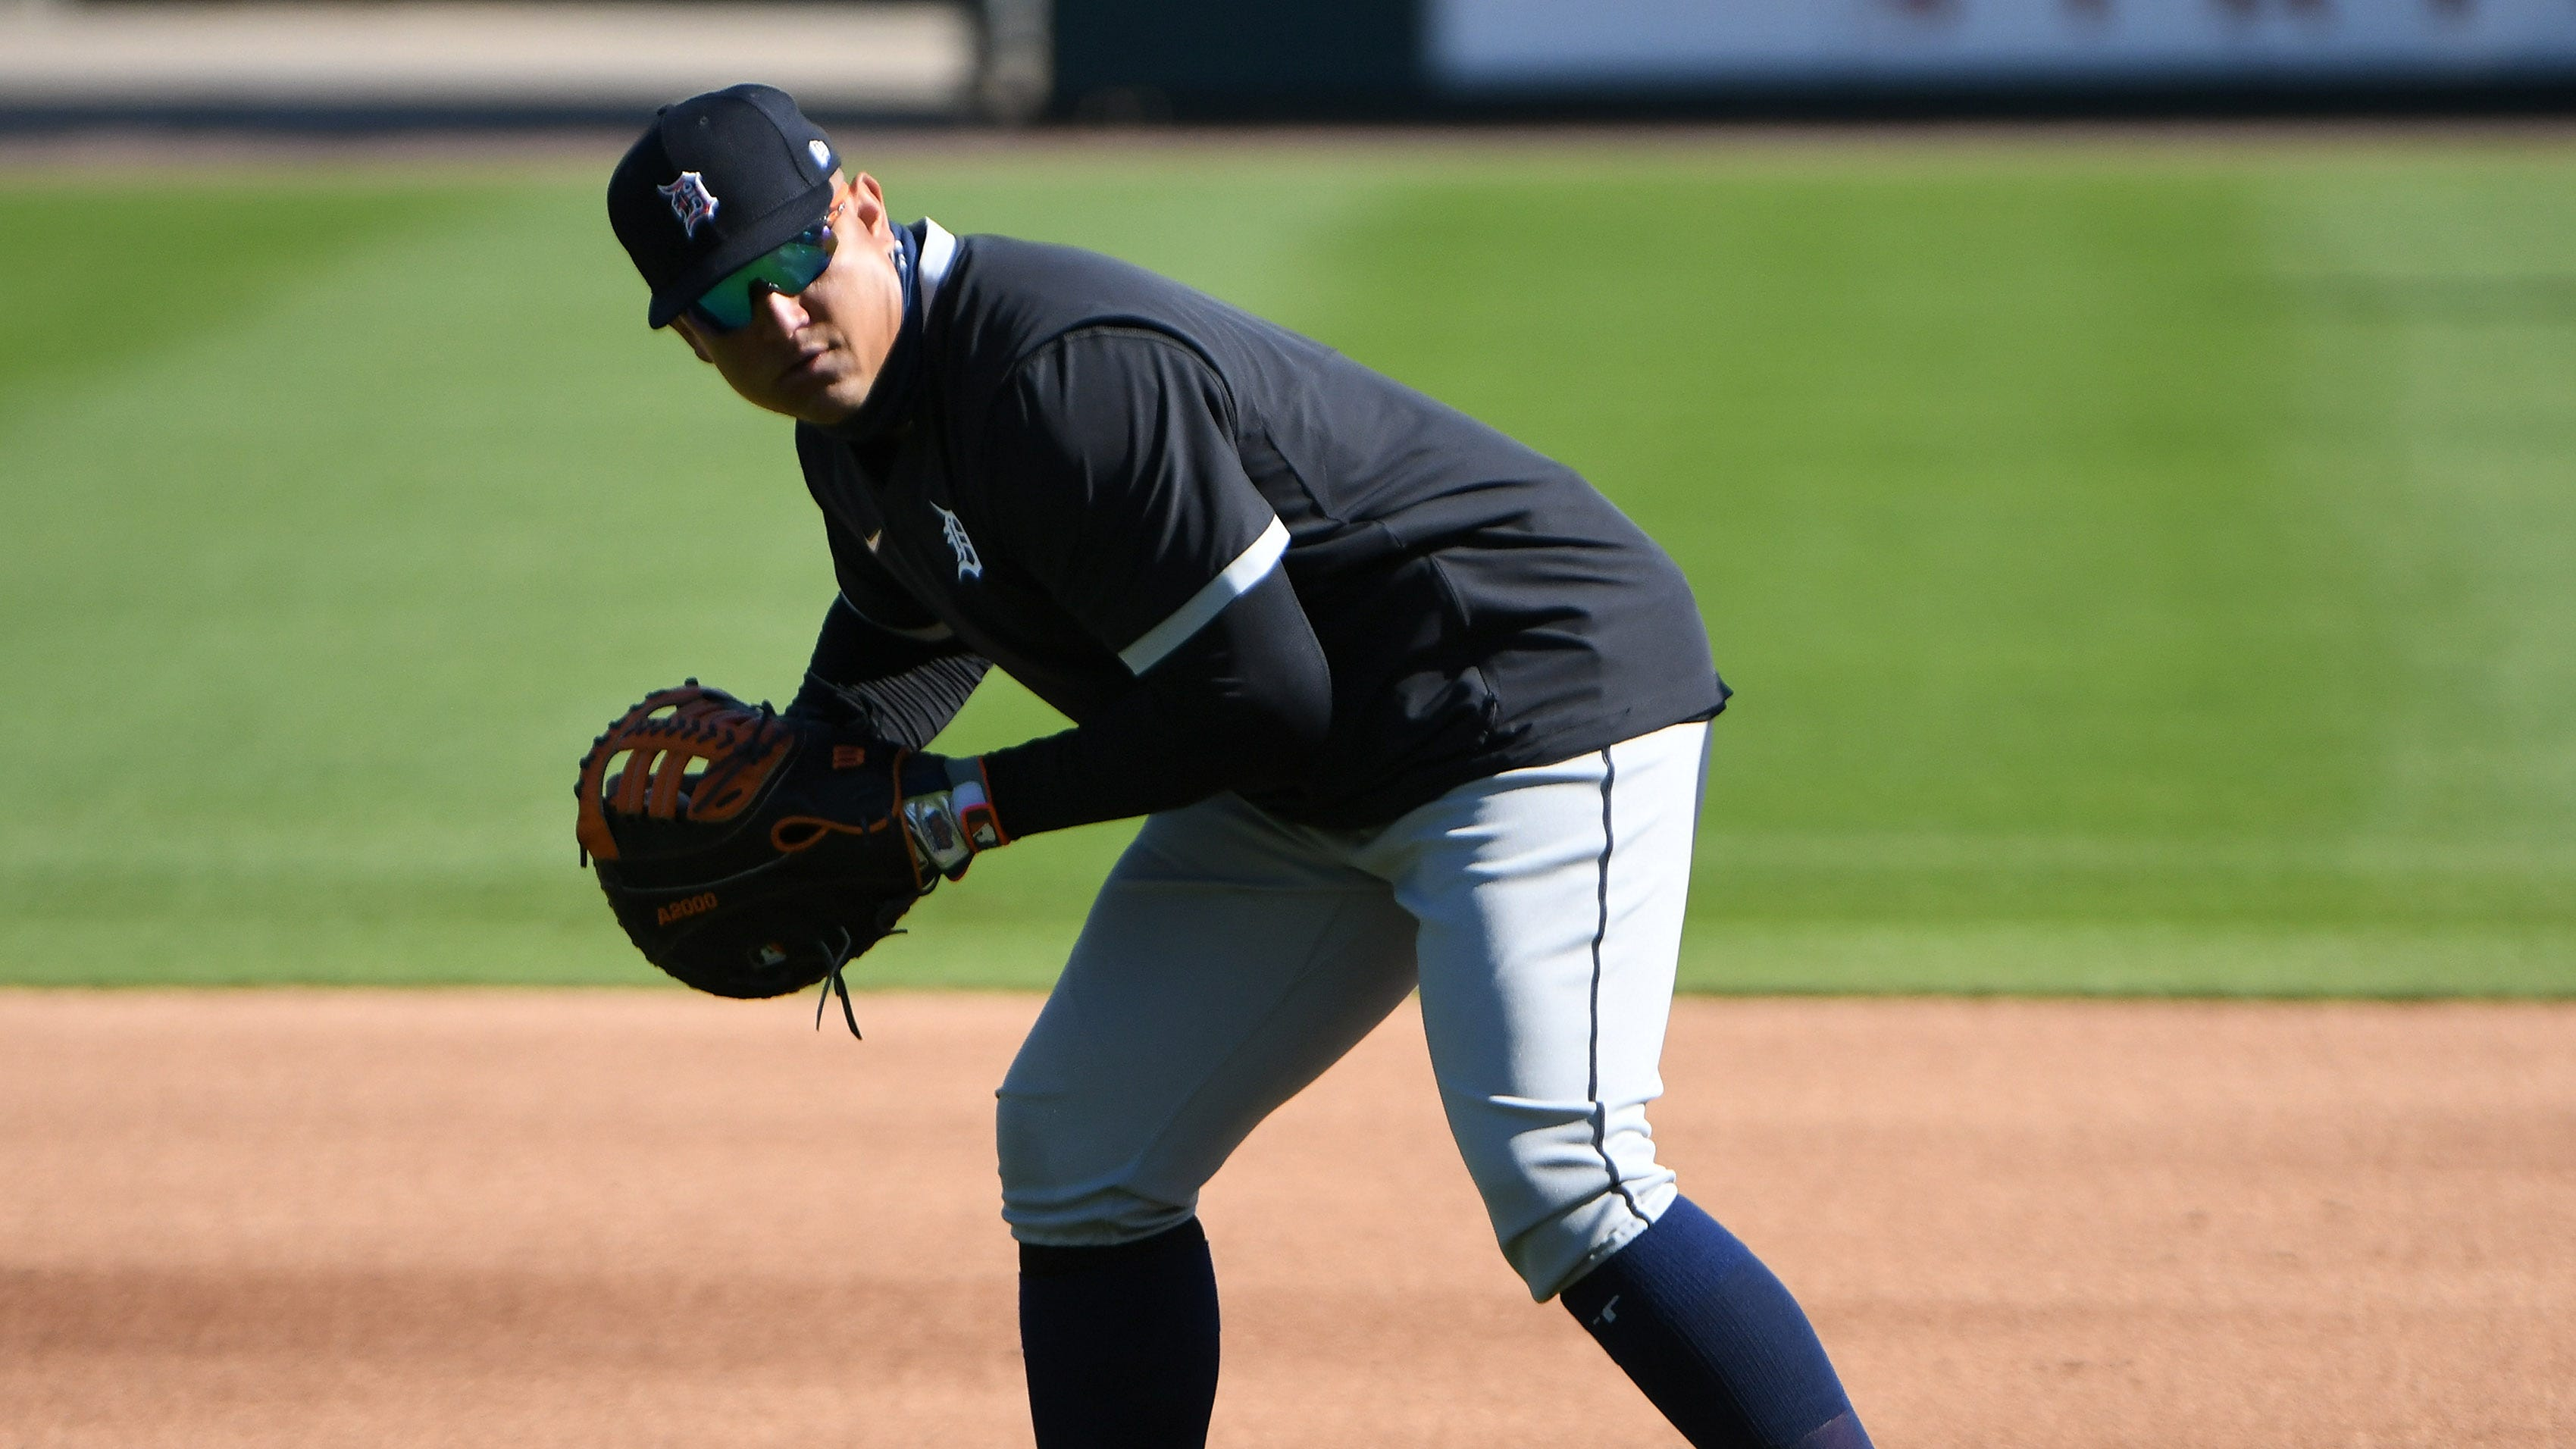 Tigers first baseman Miguel Cabrera during infield practice.